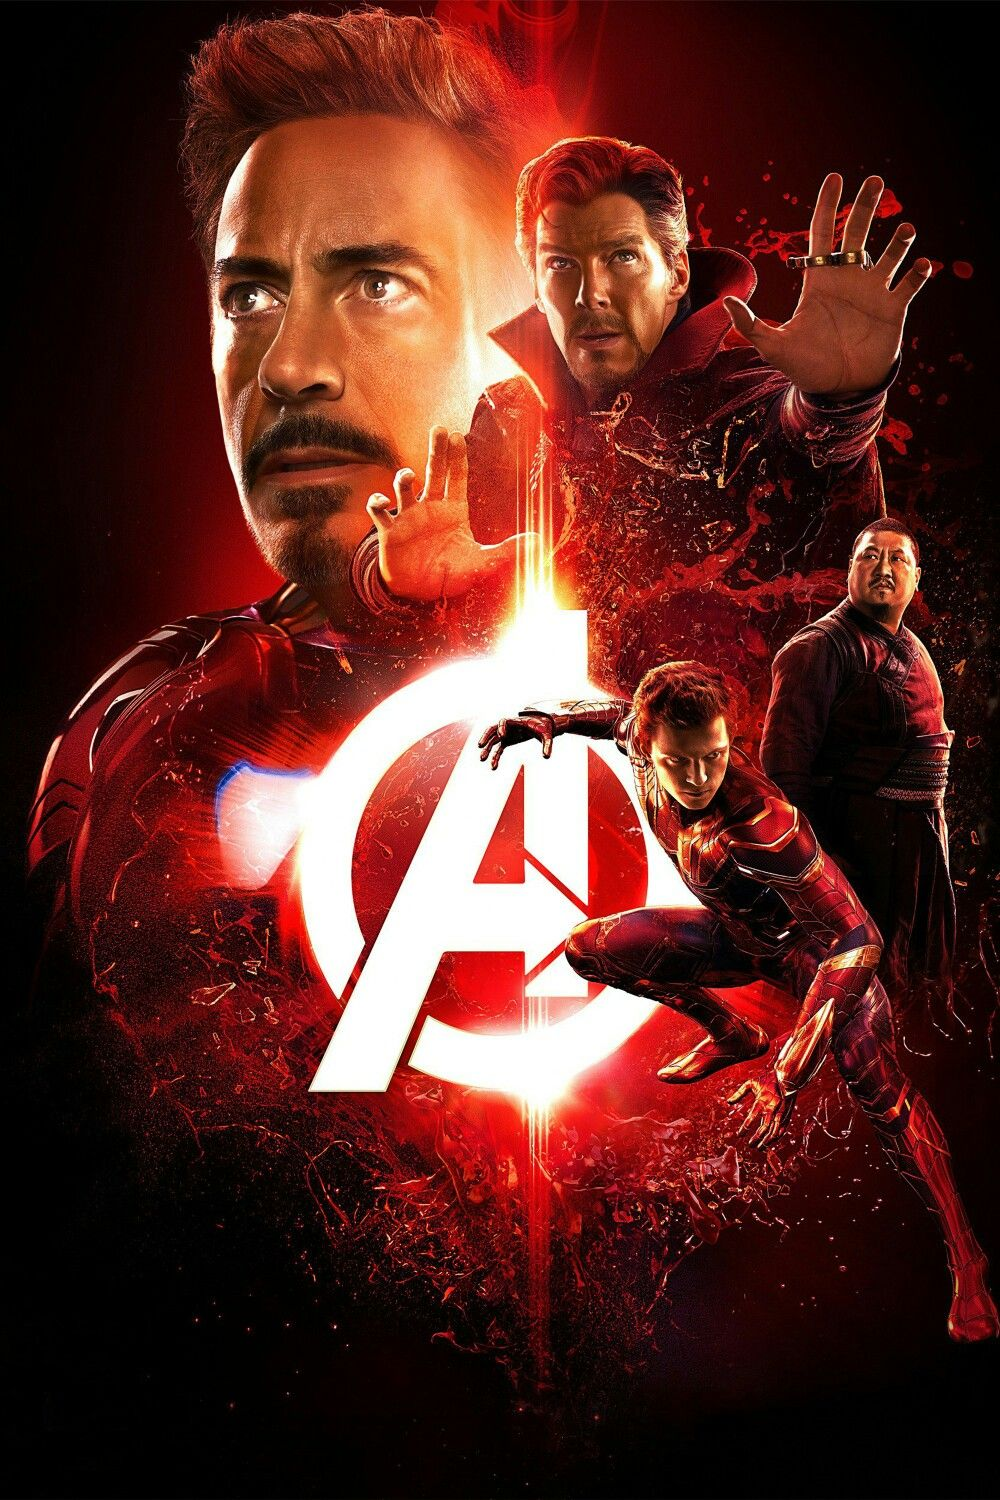 Avengers Infinity War Textless Movie Poster Textless Movie Posters Artwork Scififantasy Movie Posters Horror Mo Marvel Posters Marvel Films Marvel Avengers